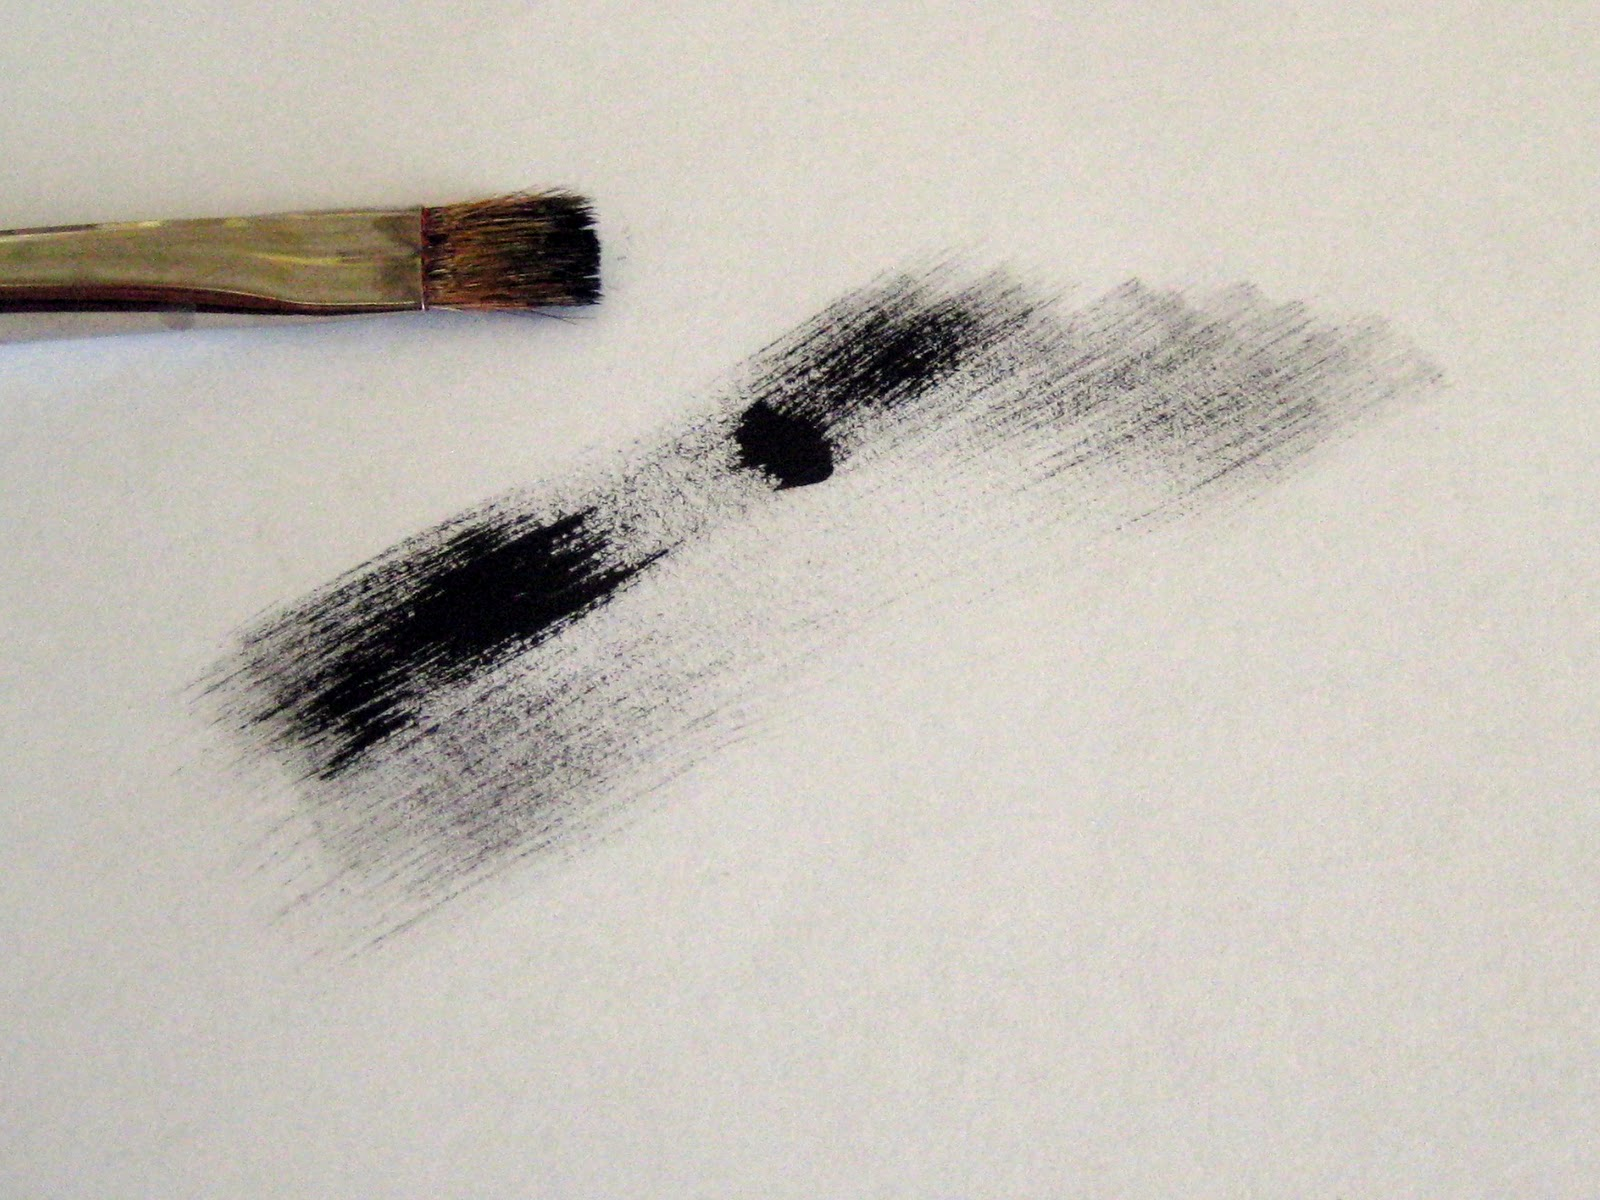 A brush next to paper showing how the paint has been nearly wiped clean.